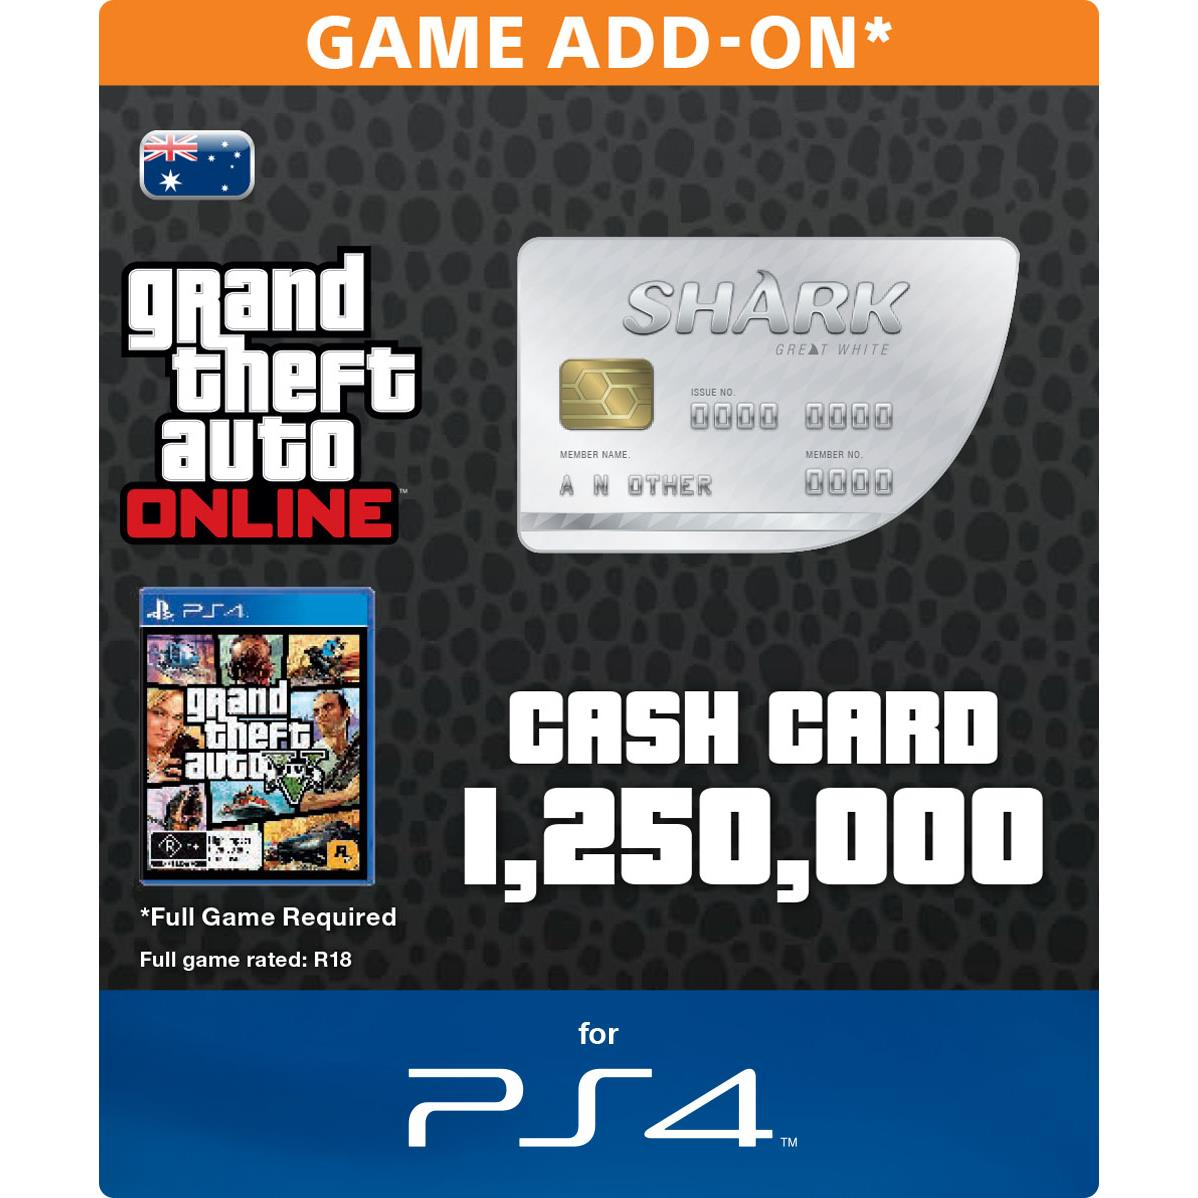 https://www.jbhifi.com.au/products/playstation-4-grand-theft-auto-online-1250000-great-white-shark-card-digital-download  2020-10-25T21:25:03+11:00 daily  https://cdn.shopify.com/s/files/1/0024/9803/5810/products/881685-Product-0-I.jpg?v=1572323398  ...